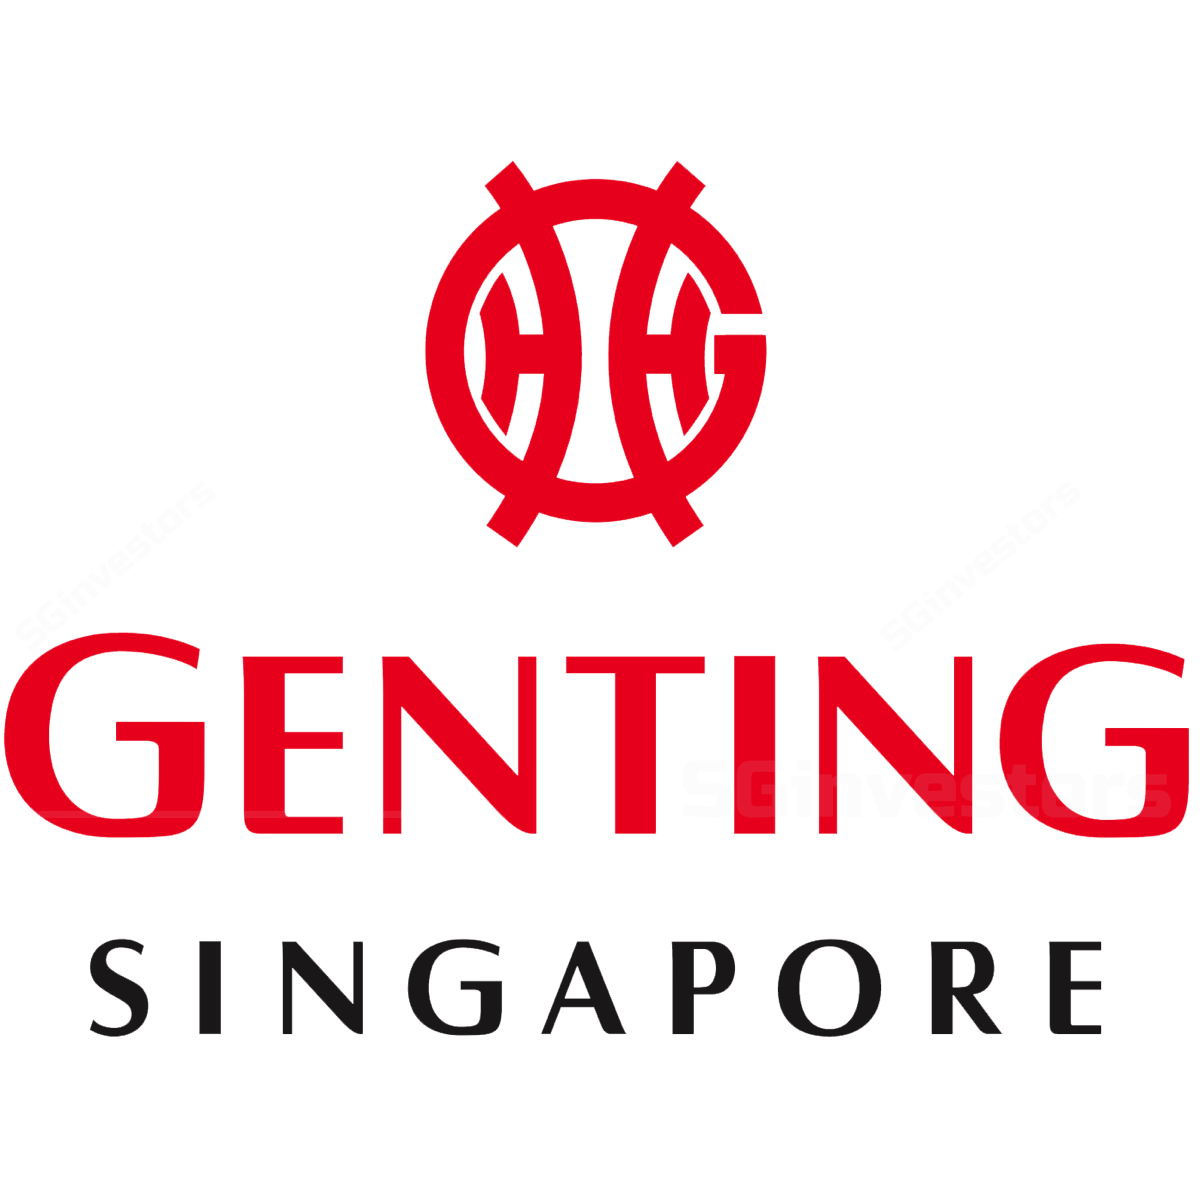 Genting Singapore (GENS SP) - Maybank Kim Eng 2018-02-26: Could Have Been Better But Maintain Our Positive View